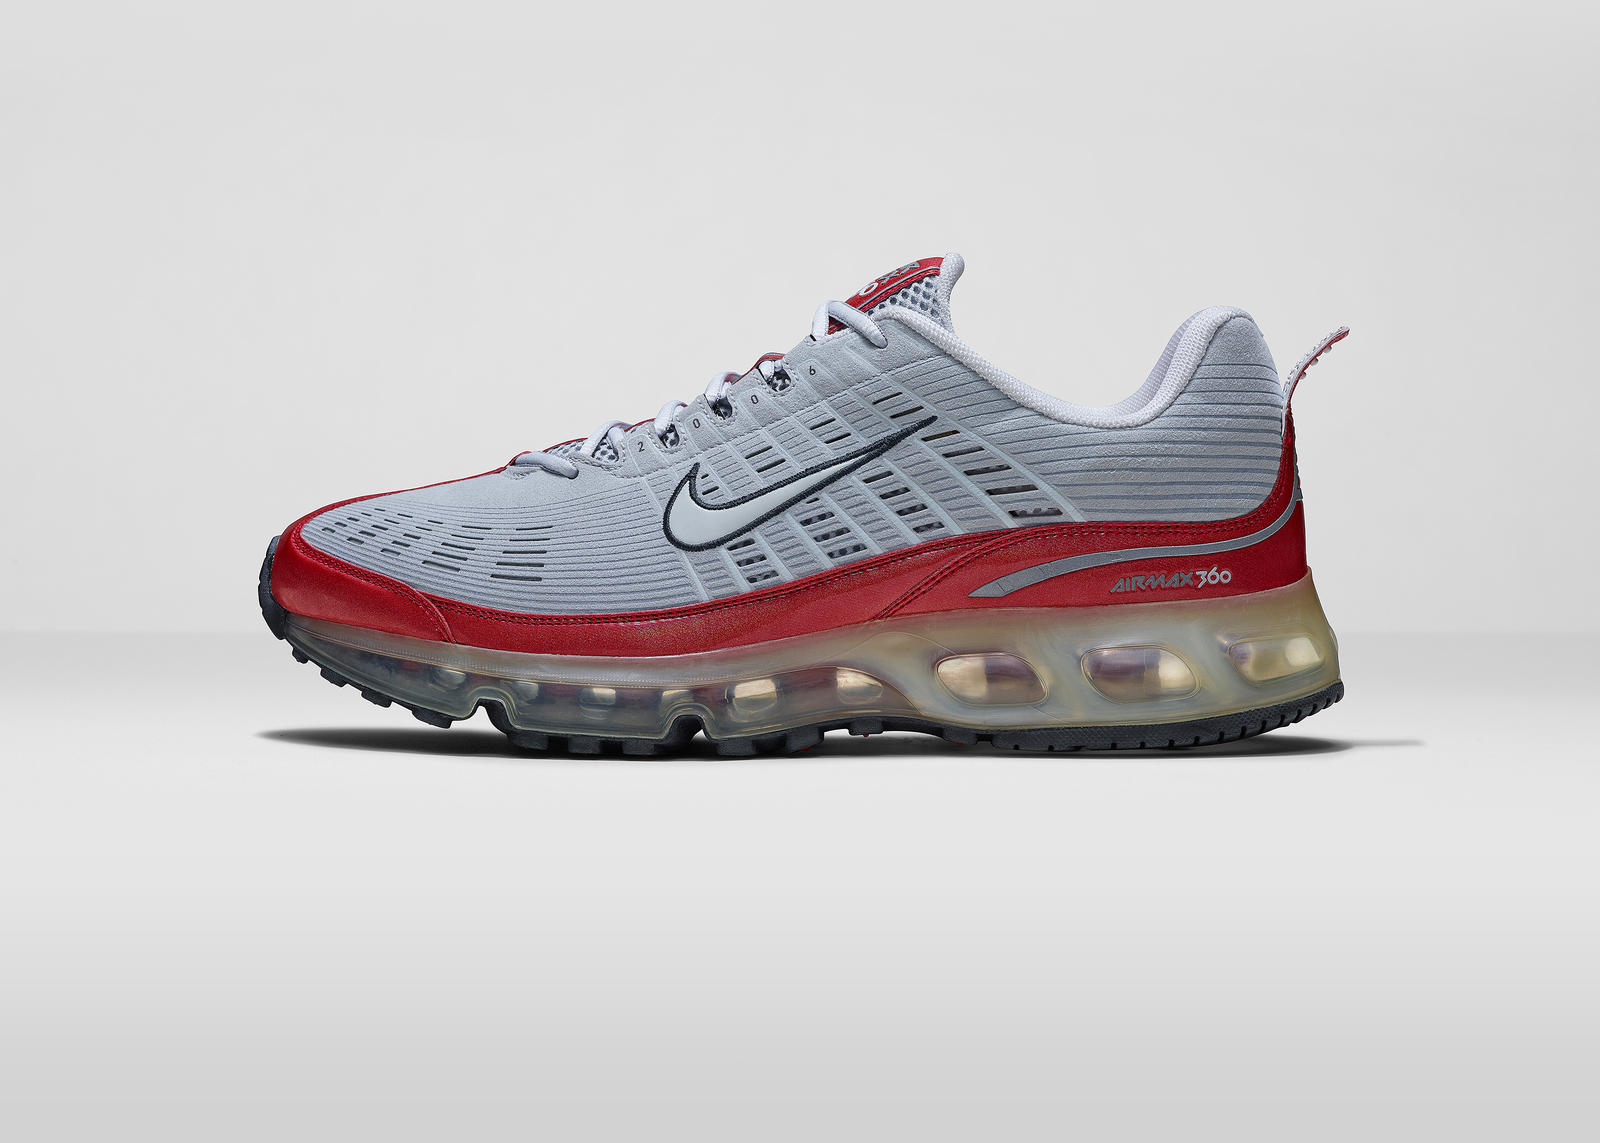 hot sale online 3471f 1a502 Air Max 360 (2006). NikeAirMaxDay2015360LAT. NikeAirMaxDay2015360OUT